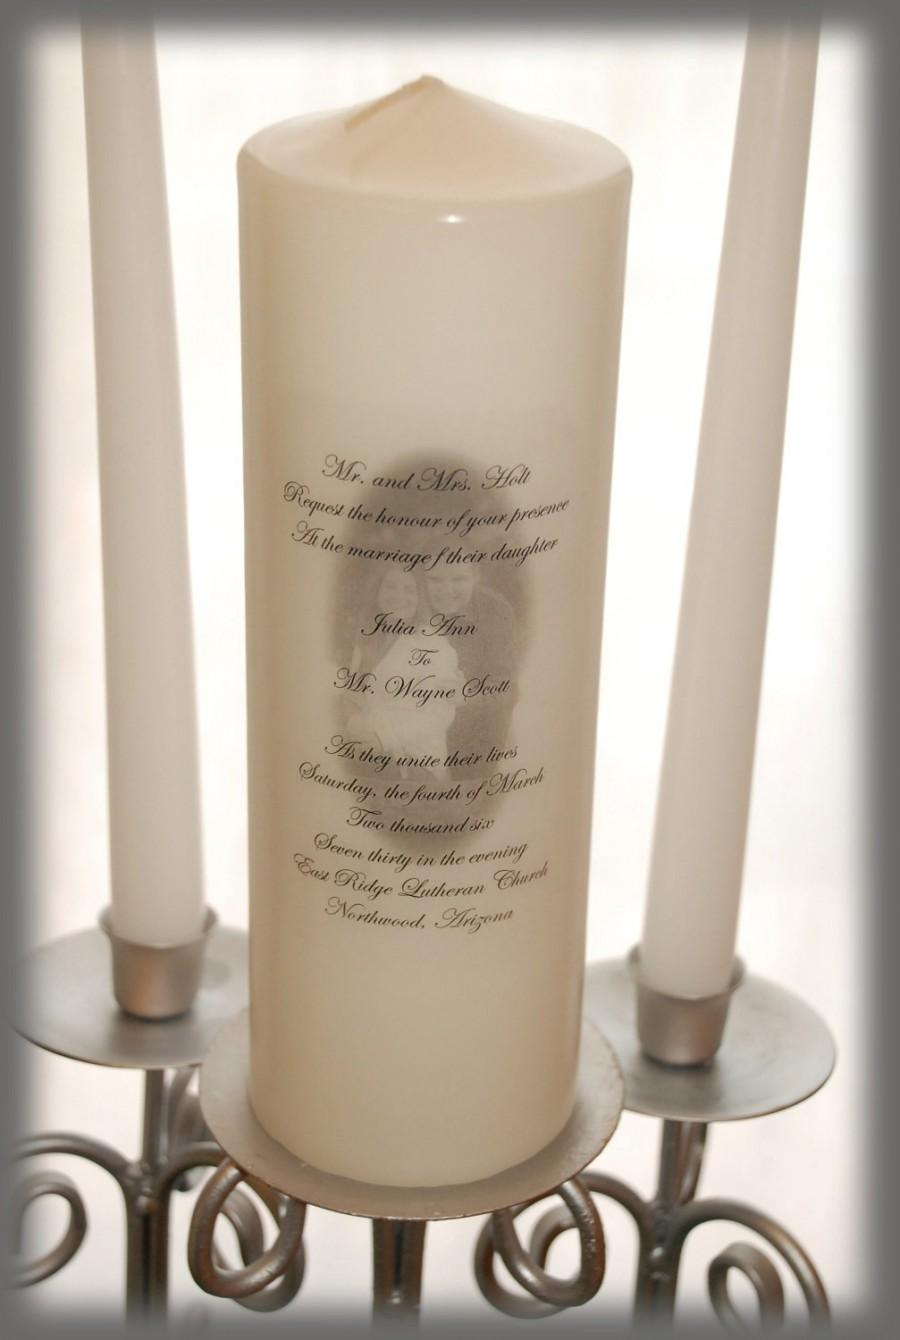 Hochzeit - Personalized Unity Candle SET With Your Picture And Invitation Wording, wedding candles, weddings, wedding decorations